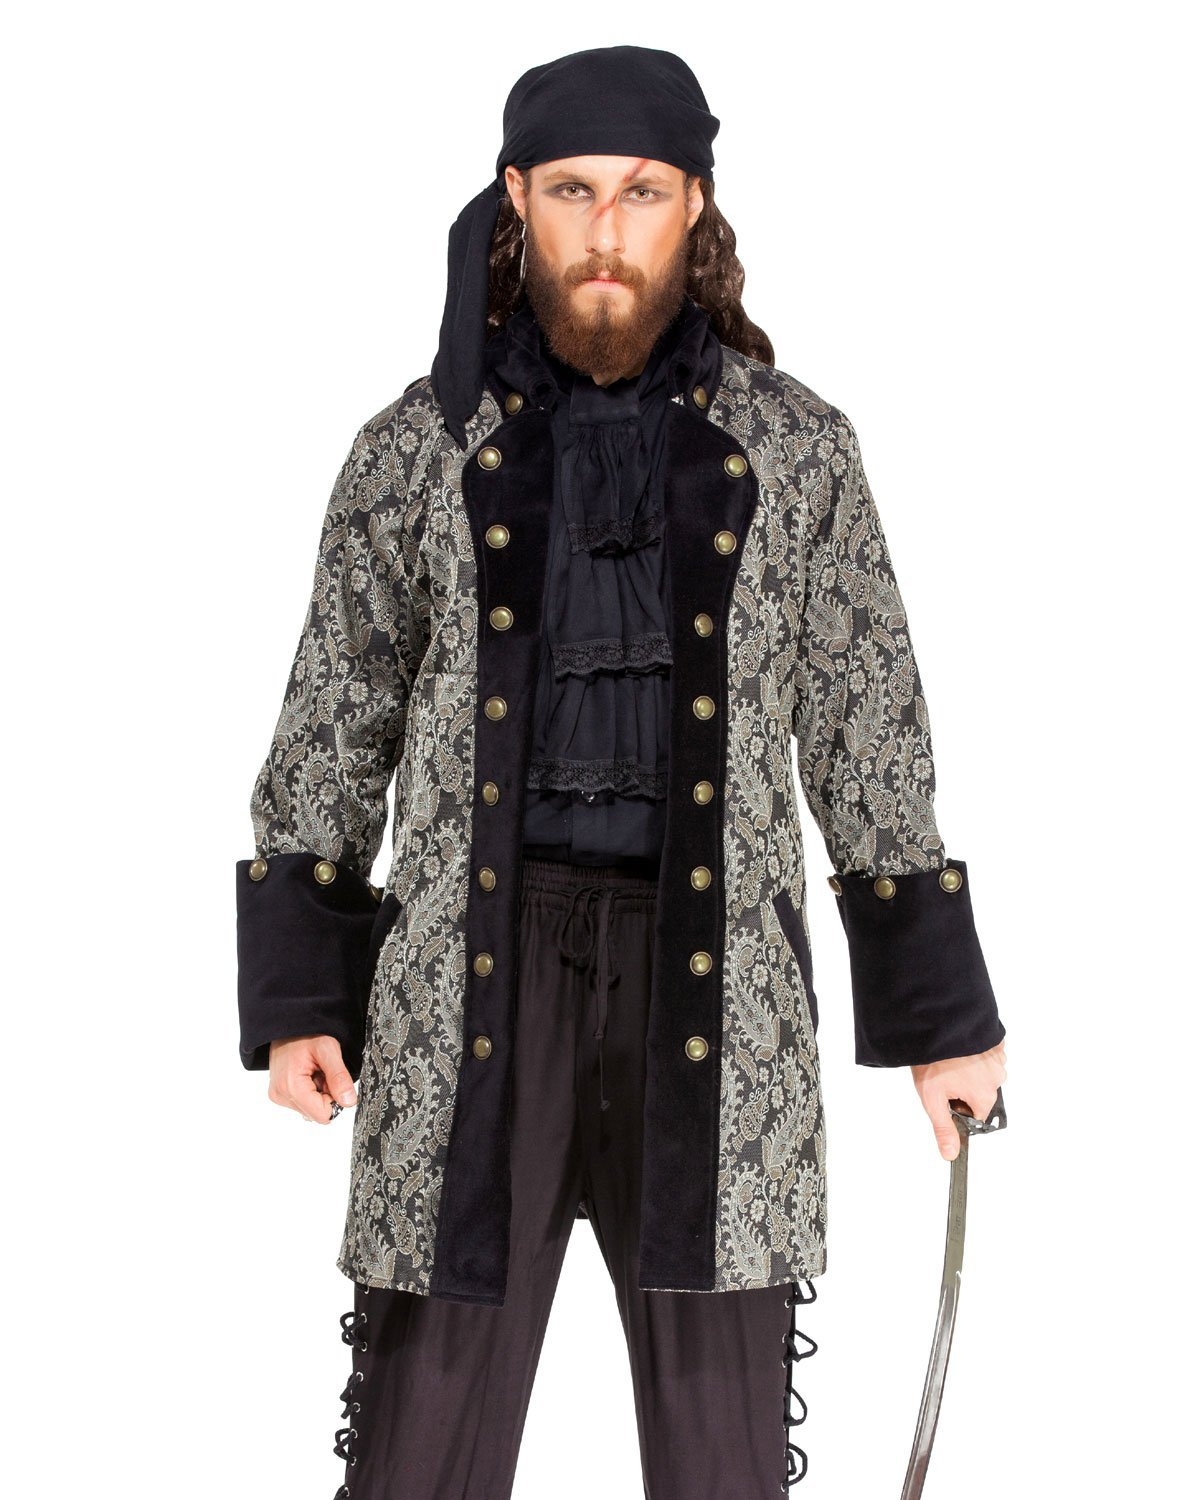 ThePirateDressing Pirate Medieval Renaissance Captain Jan de Bouff Coat Jacket Costume [C1412] (X-Large)